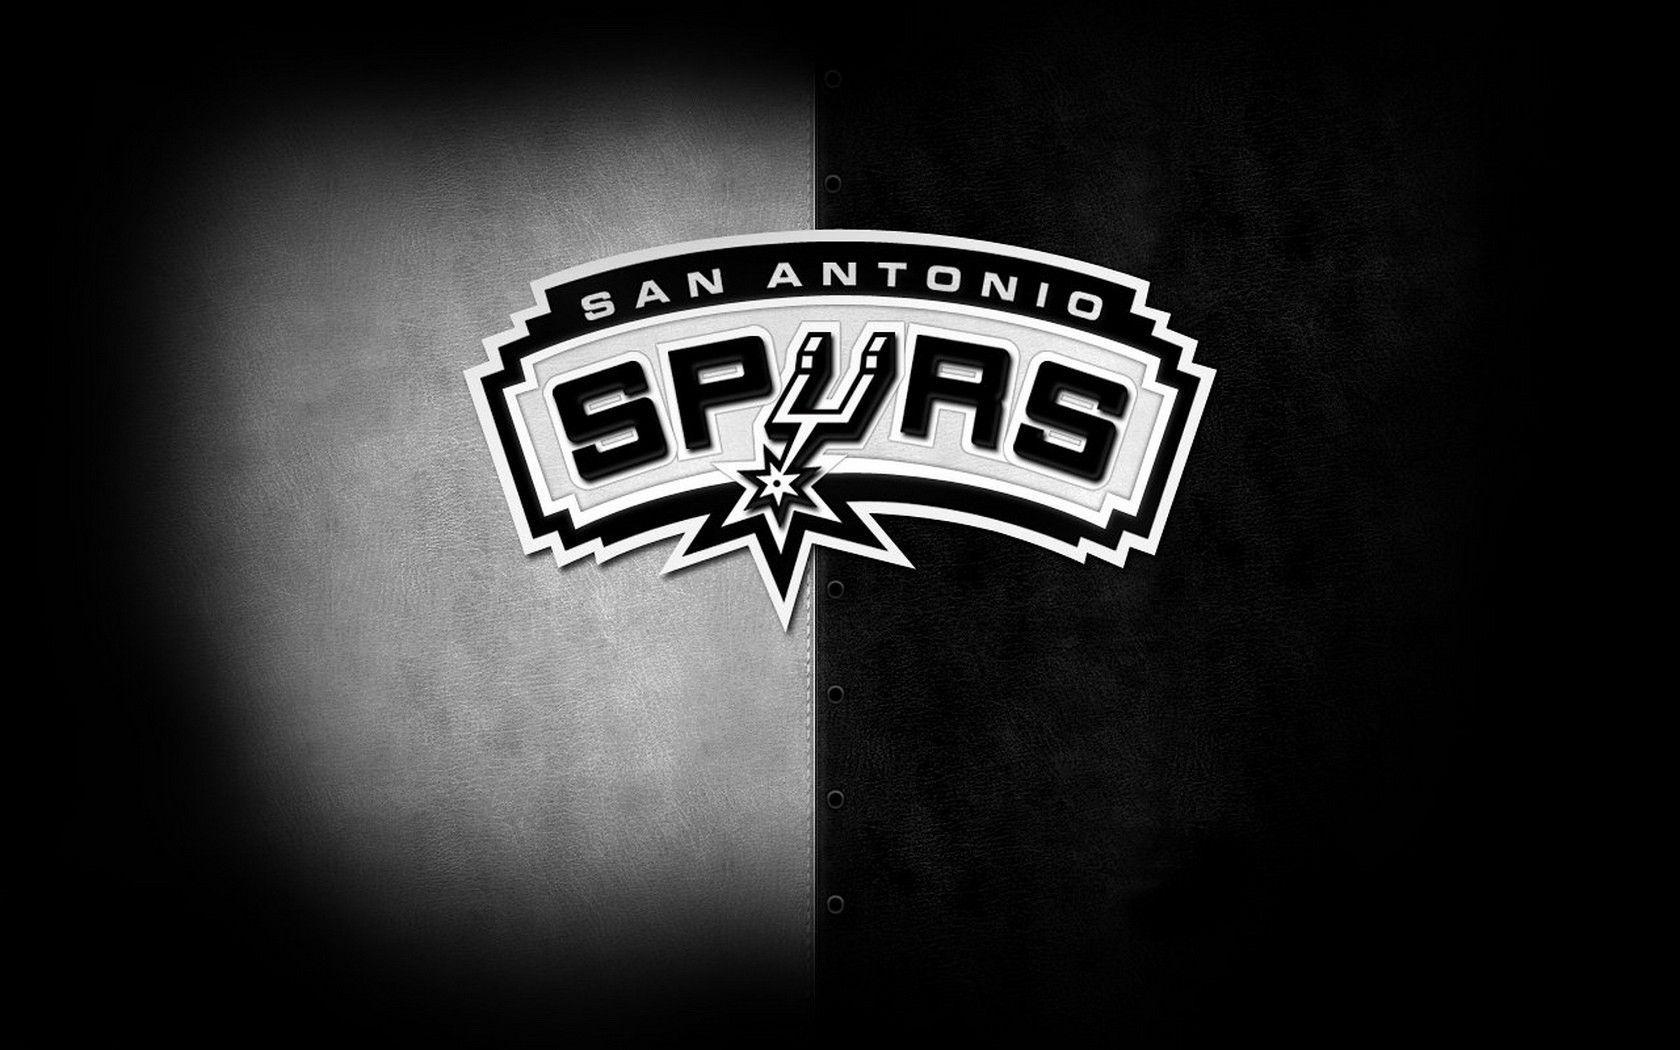 Free Spurs Wallpapers Wallpaper Cave